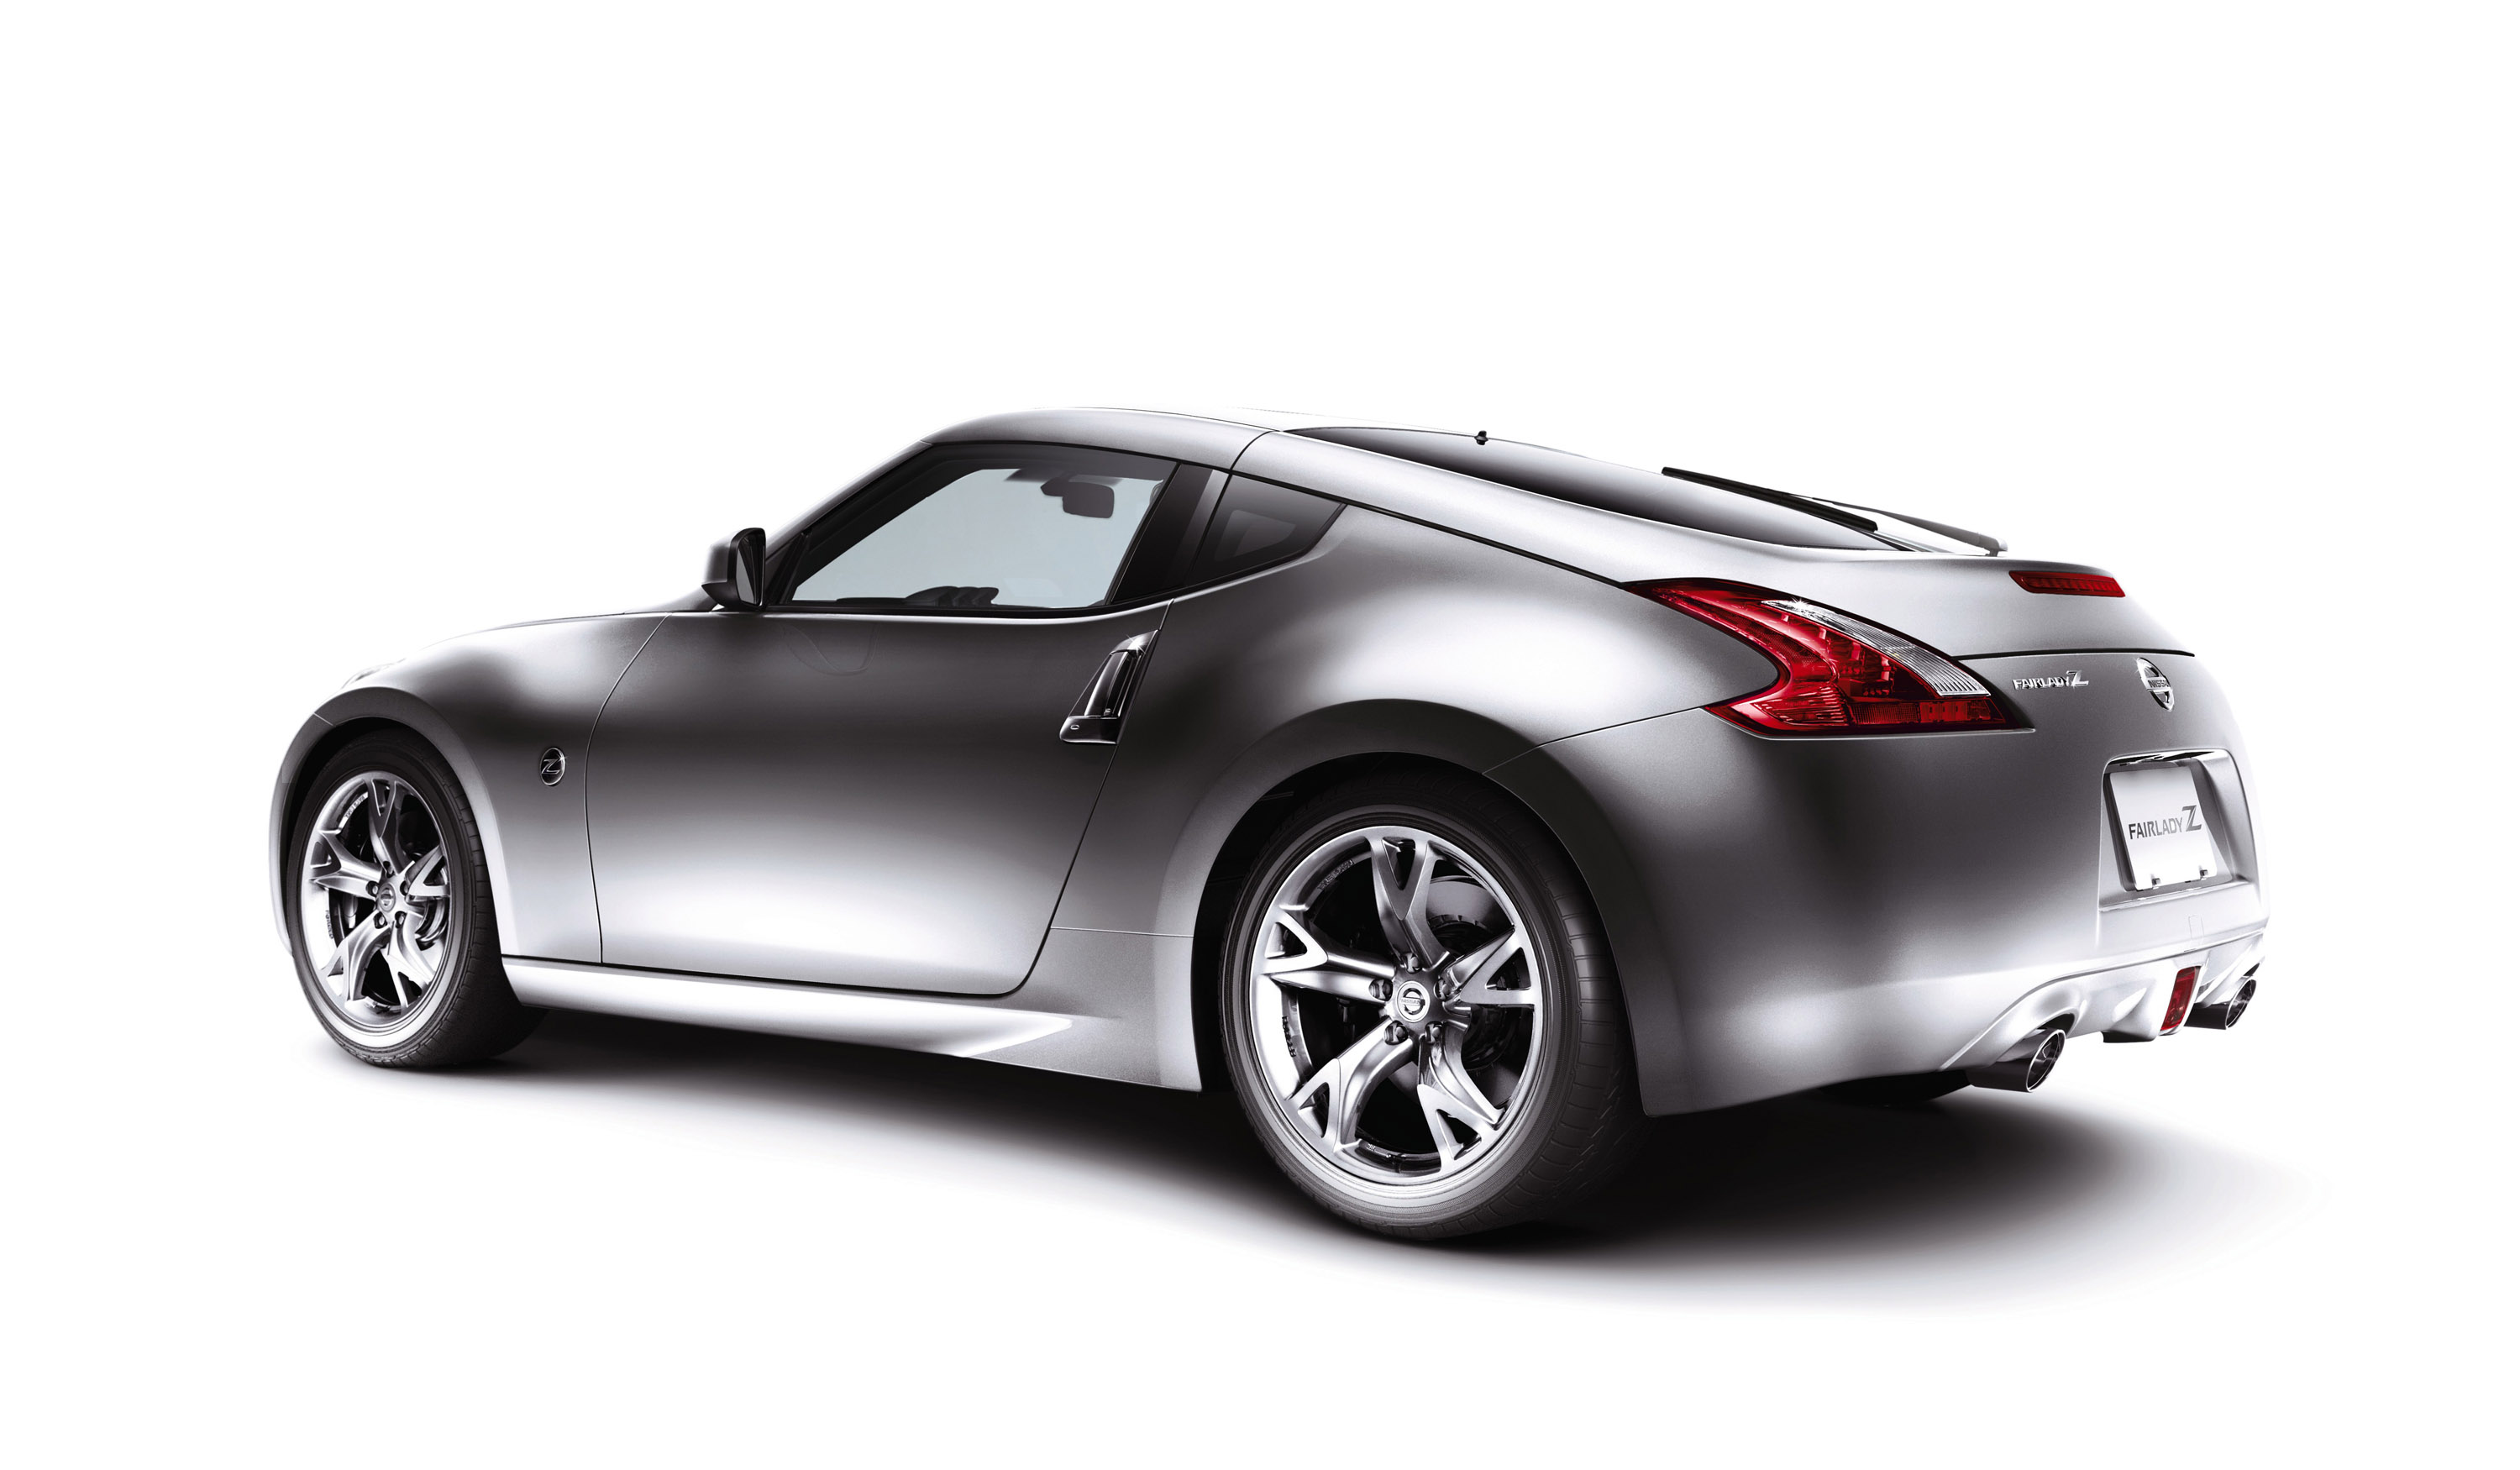 new fairlady z - photo #8